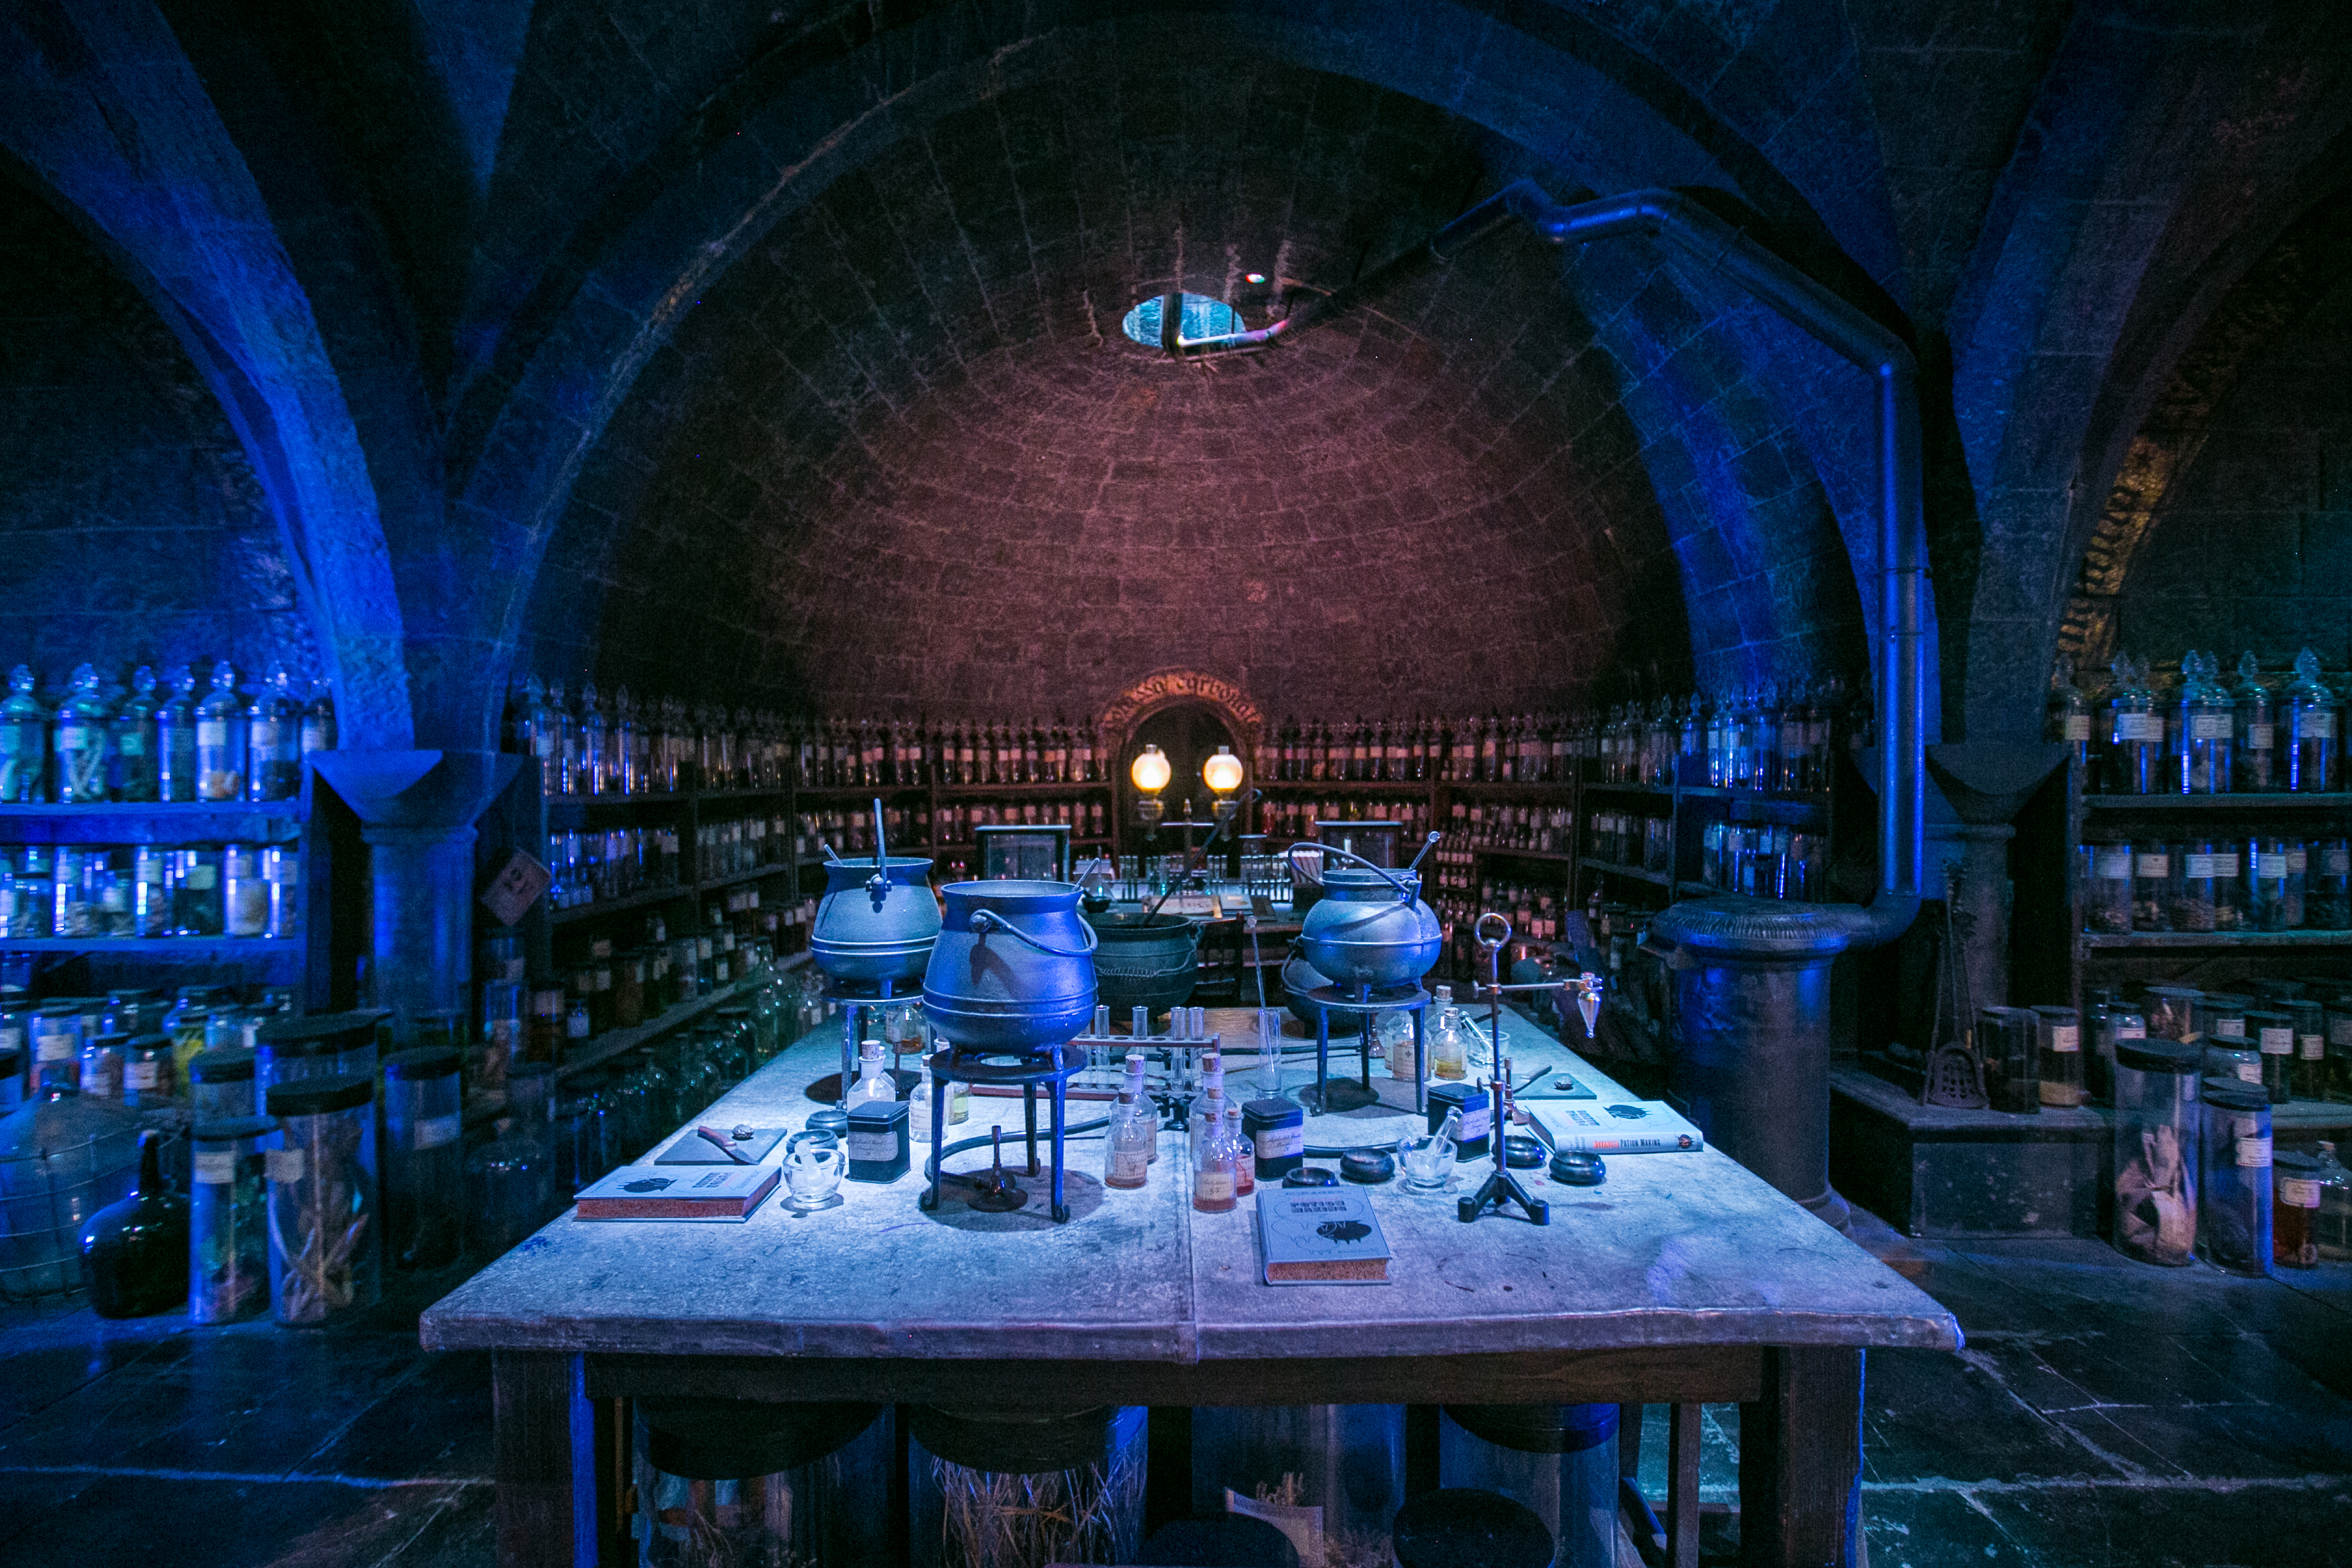 harry-potter-studio-tour-potions-classroom